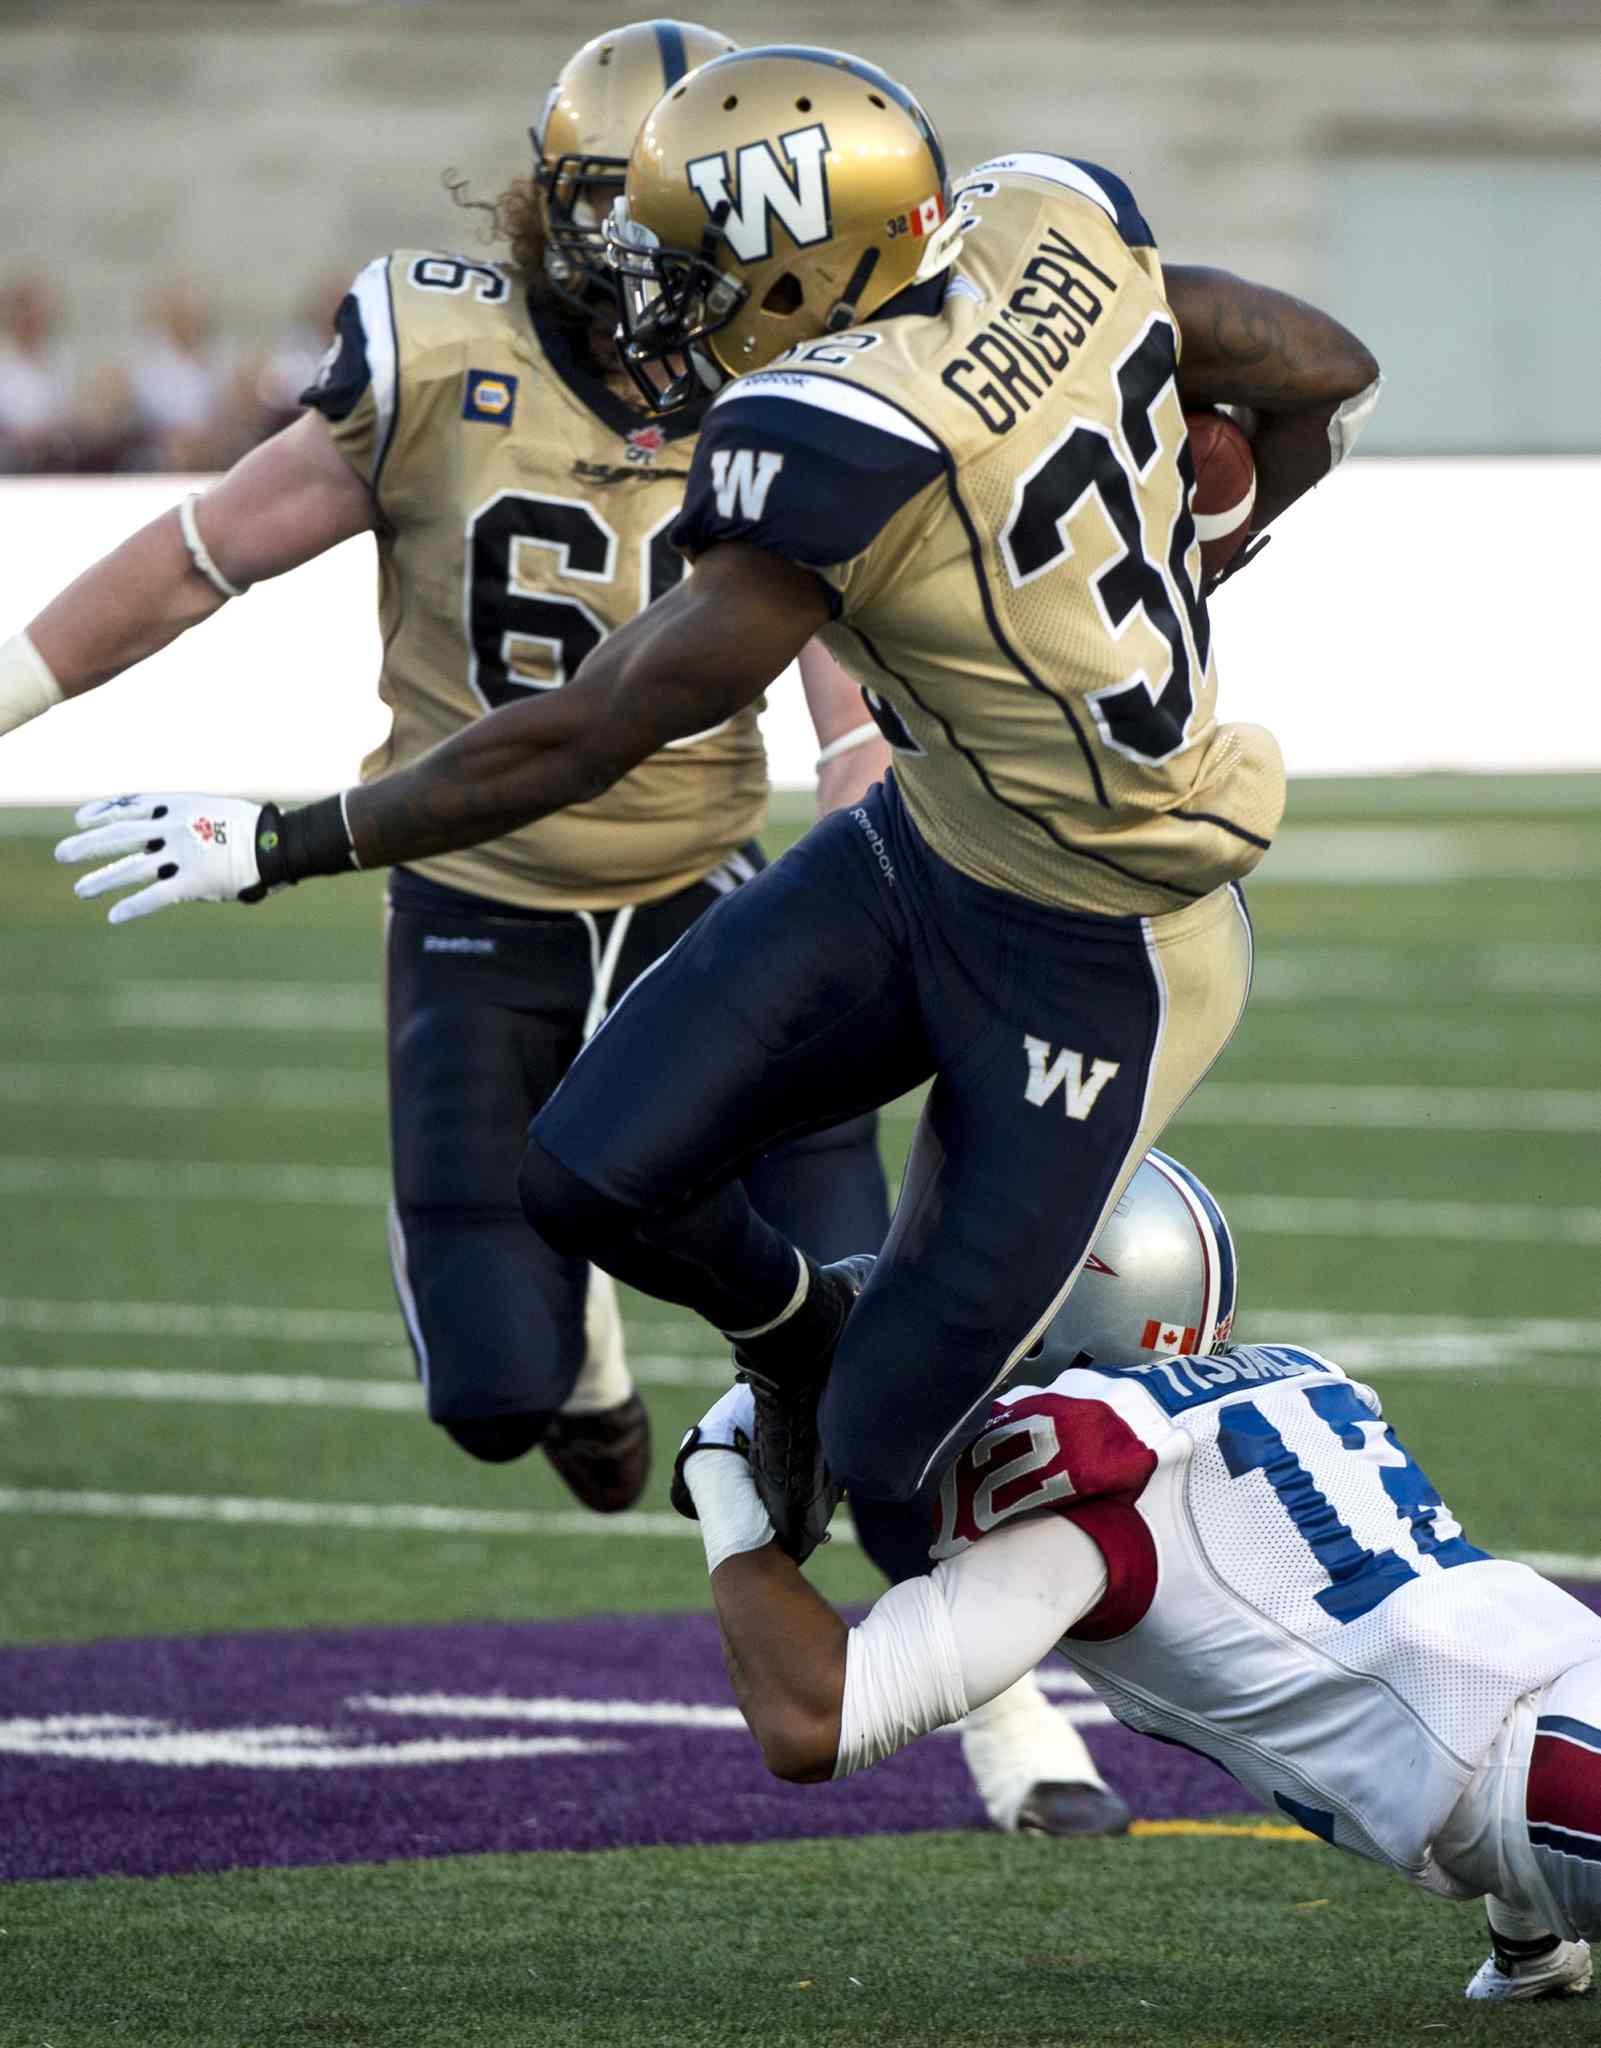 Winnipeg Blue Bombers' running back Nic Grigsby is tackled Montreal Alouettes' cornerback Geoff Tisdale during the second quarter.